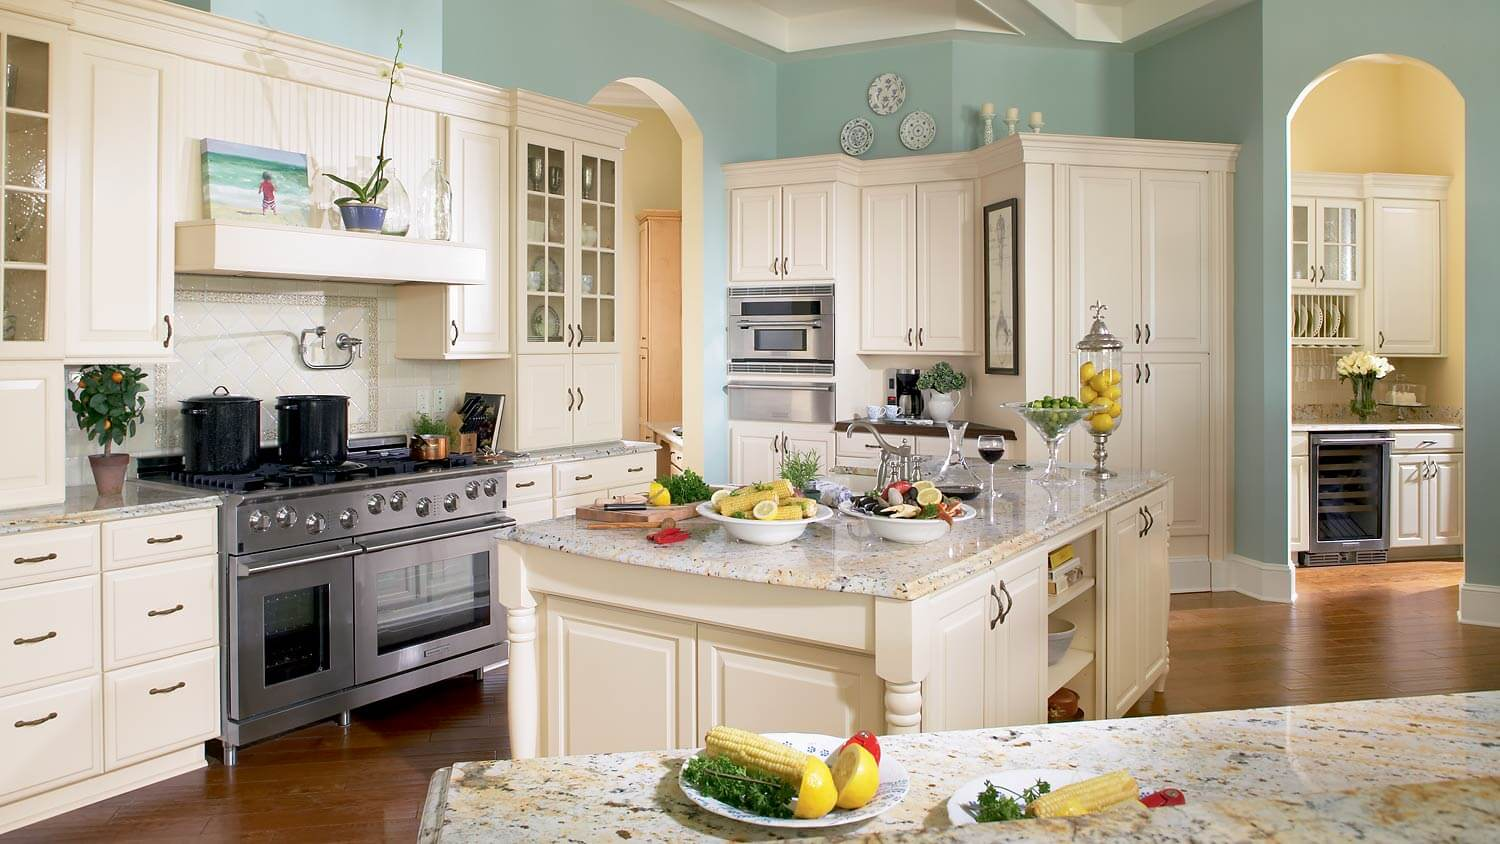 The ultimate cook s kitchen form function and aesthetics for Southern style kitchen ideas